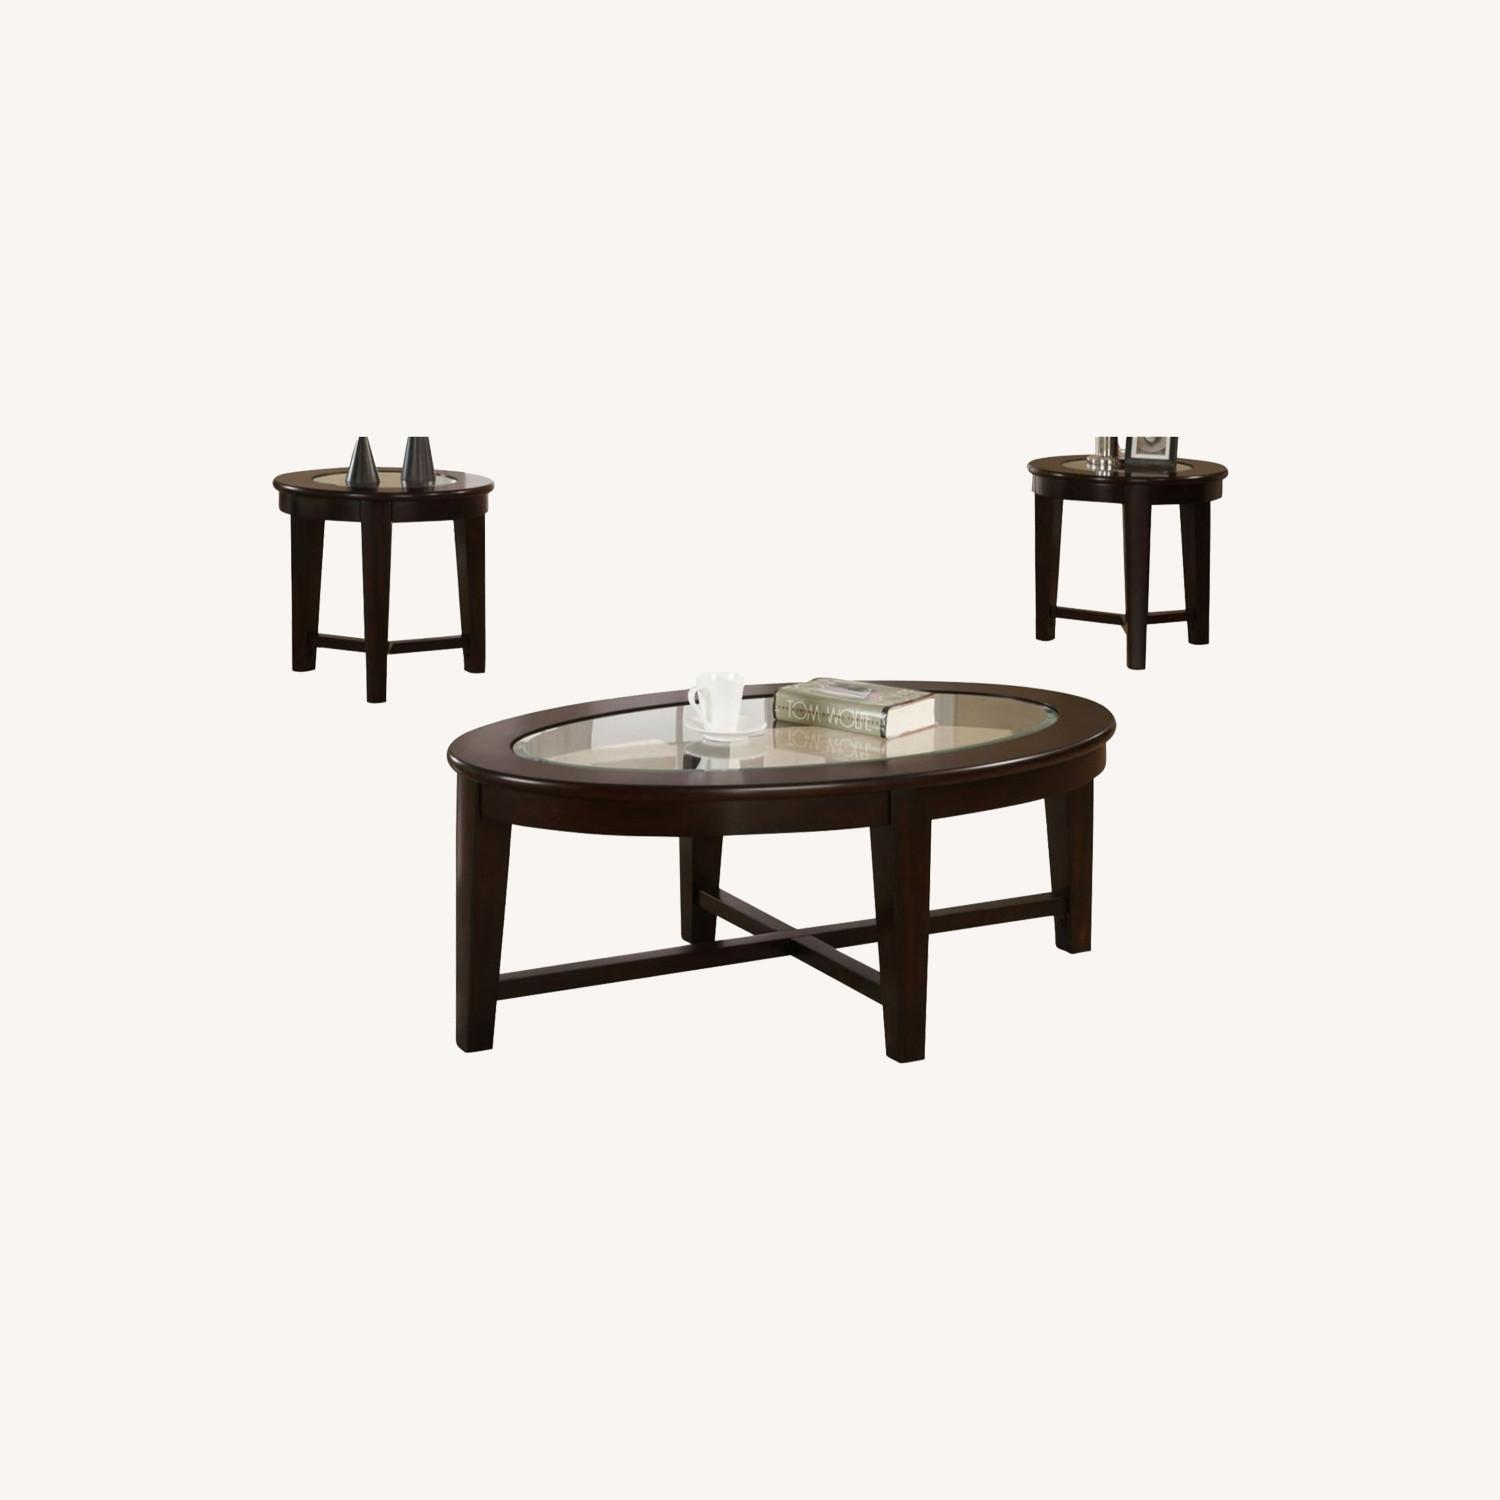 3-Piece Occasional Set In Cappuccino Finish - image-4